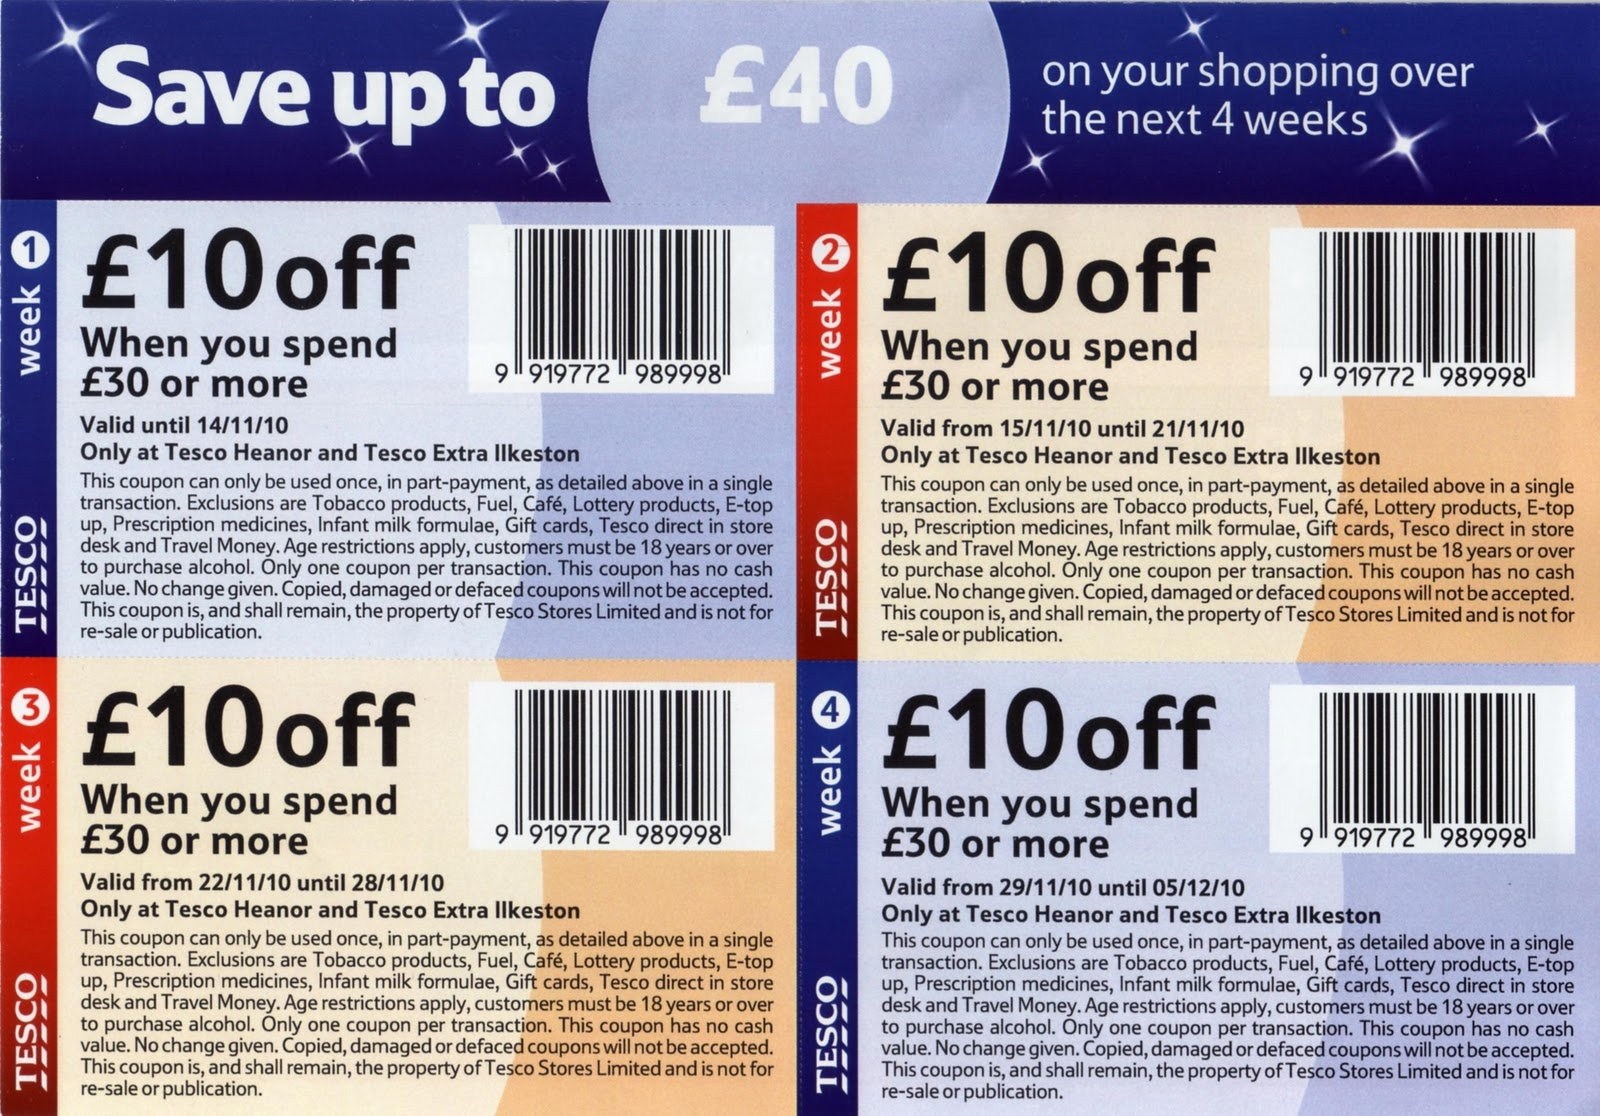 View official Tesco Direct coupons on the Offers page. Open a Tesco Clubcard to get regular coupons and accrue points that you can redeem for cash vouchers to use at Tesco. In addition, you'll be eligible for discounts and special offers from Tesco partners.